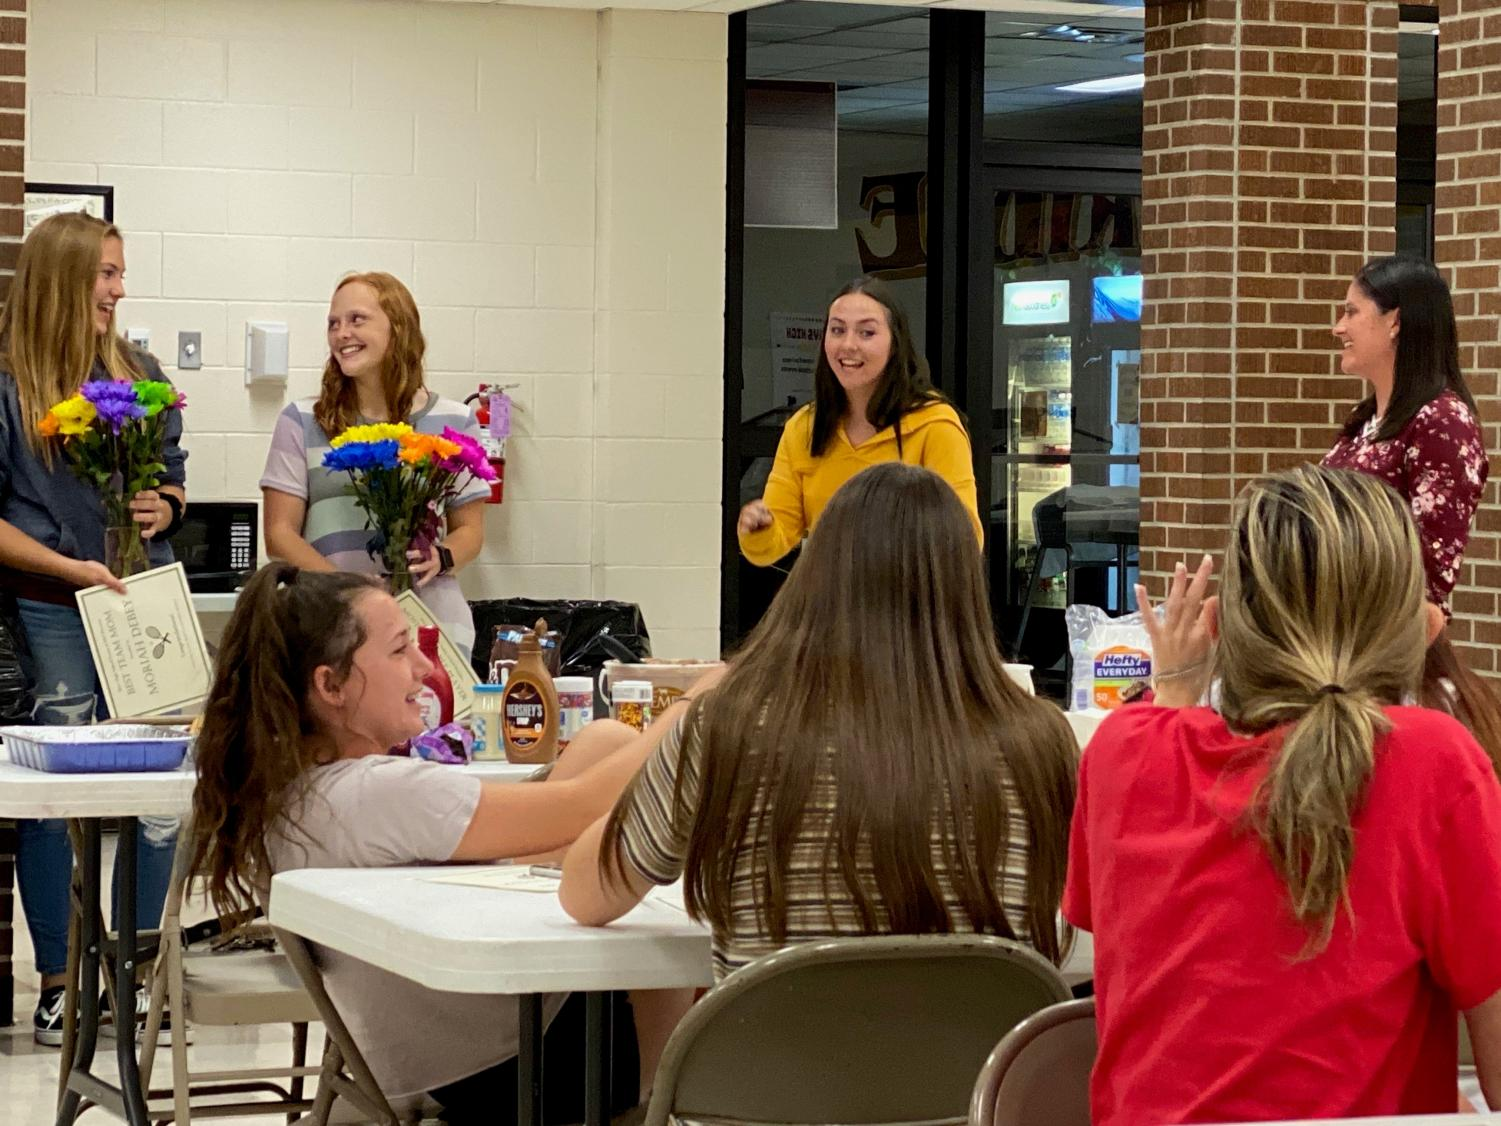 Seniors Lynsie Hansen and Moriah DeBay received flowers along with their awards. Lynsie has played tennis for three years, while this year was Moriah's first.